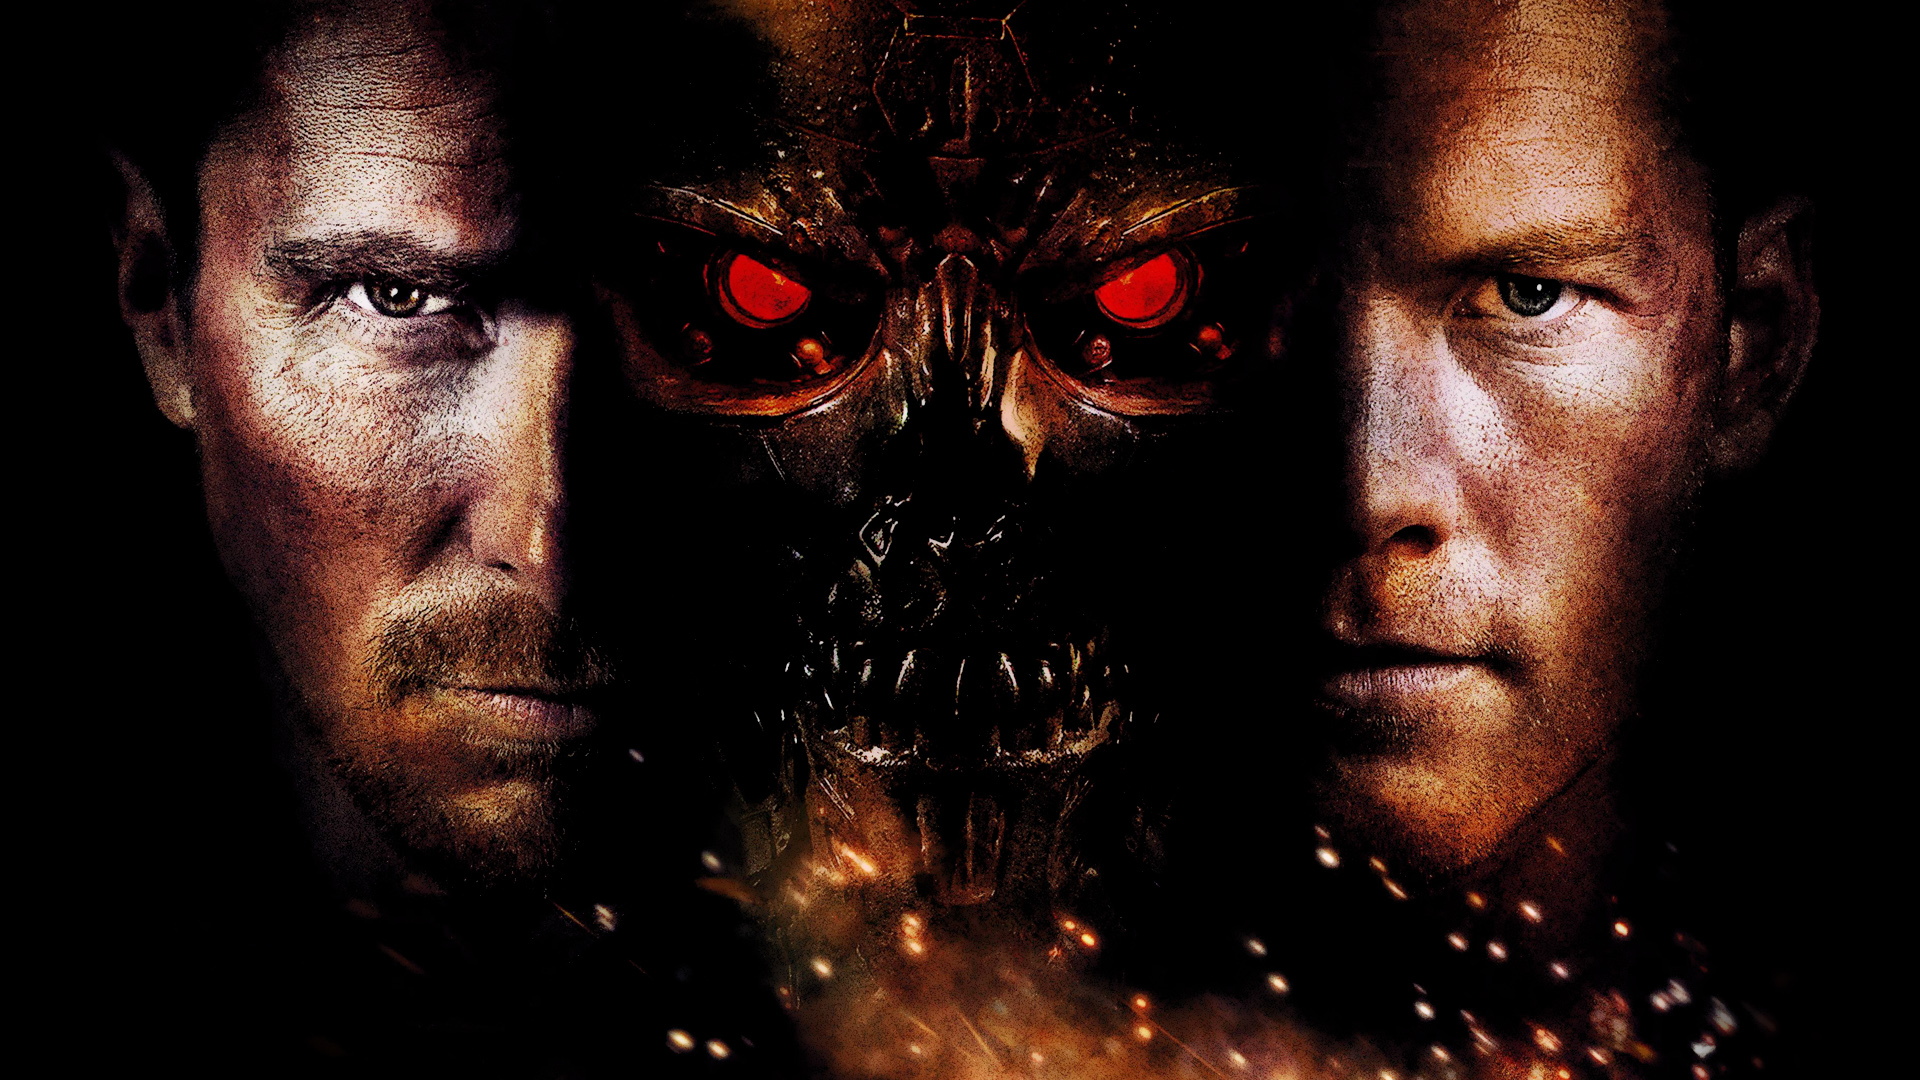 terminator salvation live wallpaper Blair_marcus is a new community dedicated to the pairing and characters blair williams and marcus wright from the film, terminator: salvation.